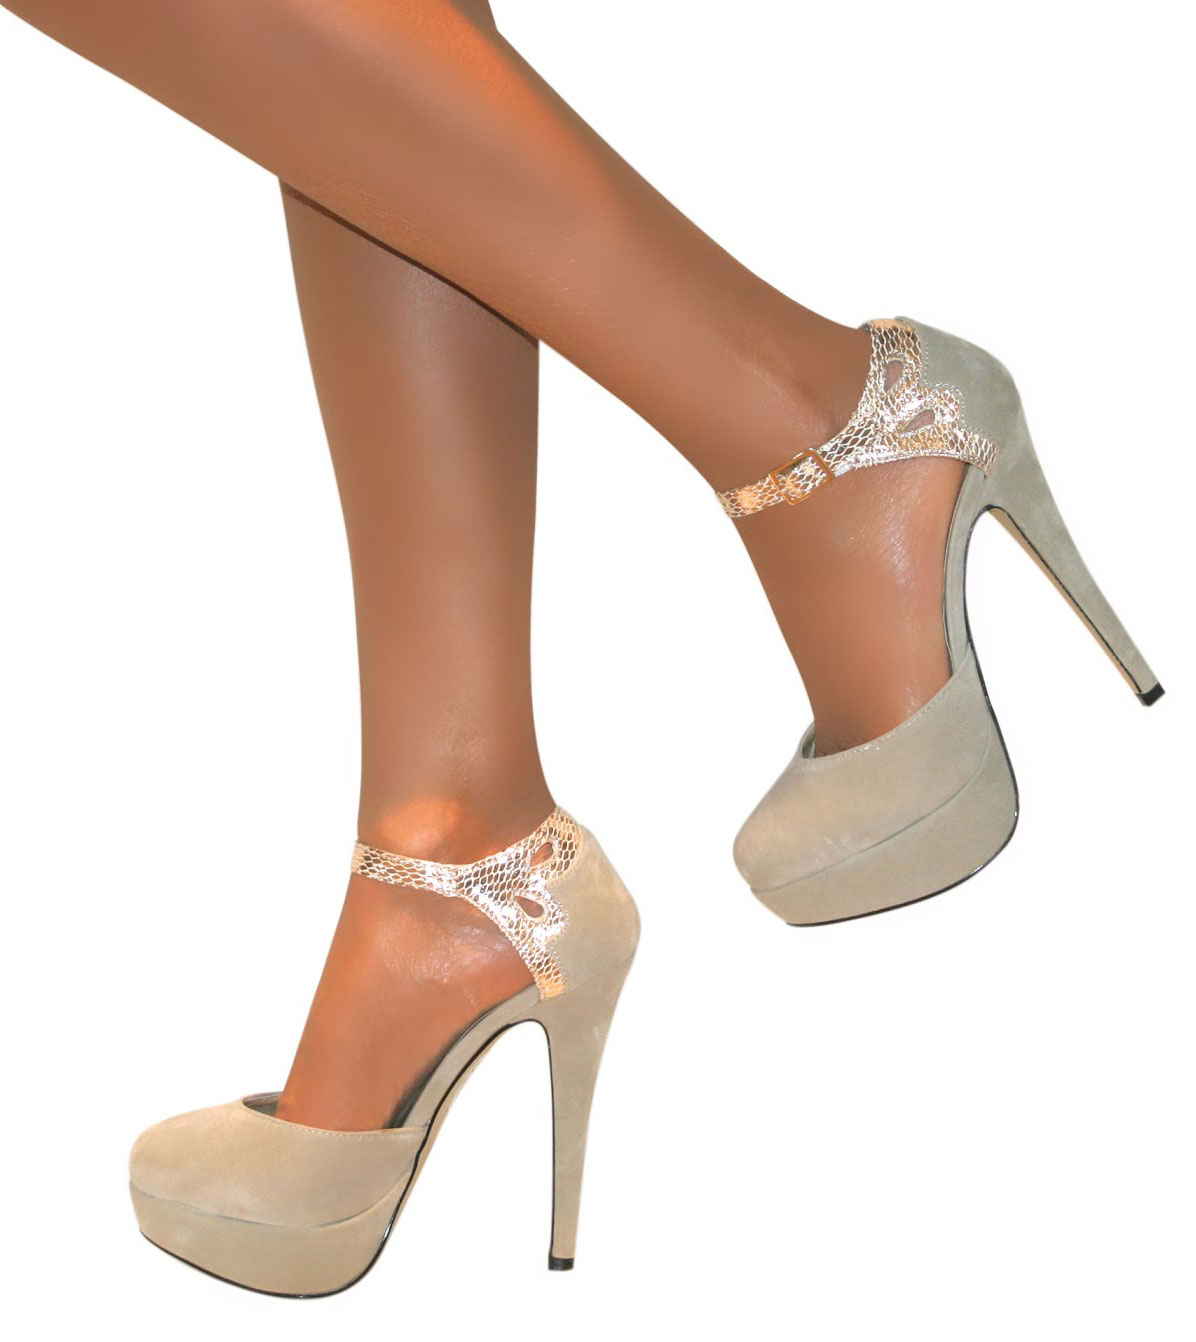 Strappy Glitter Heel Shoes - Ivory Coast vcCD3